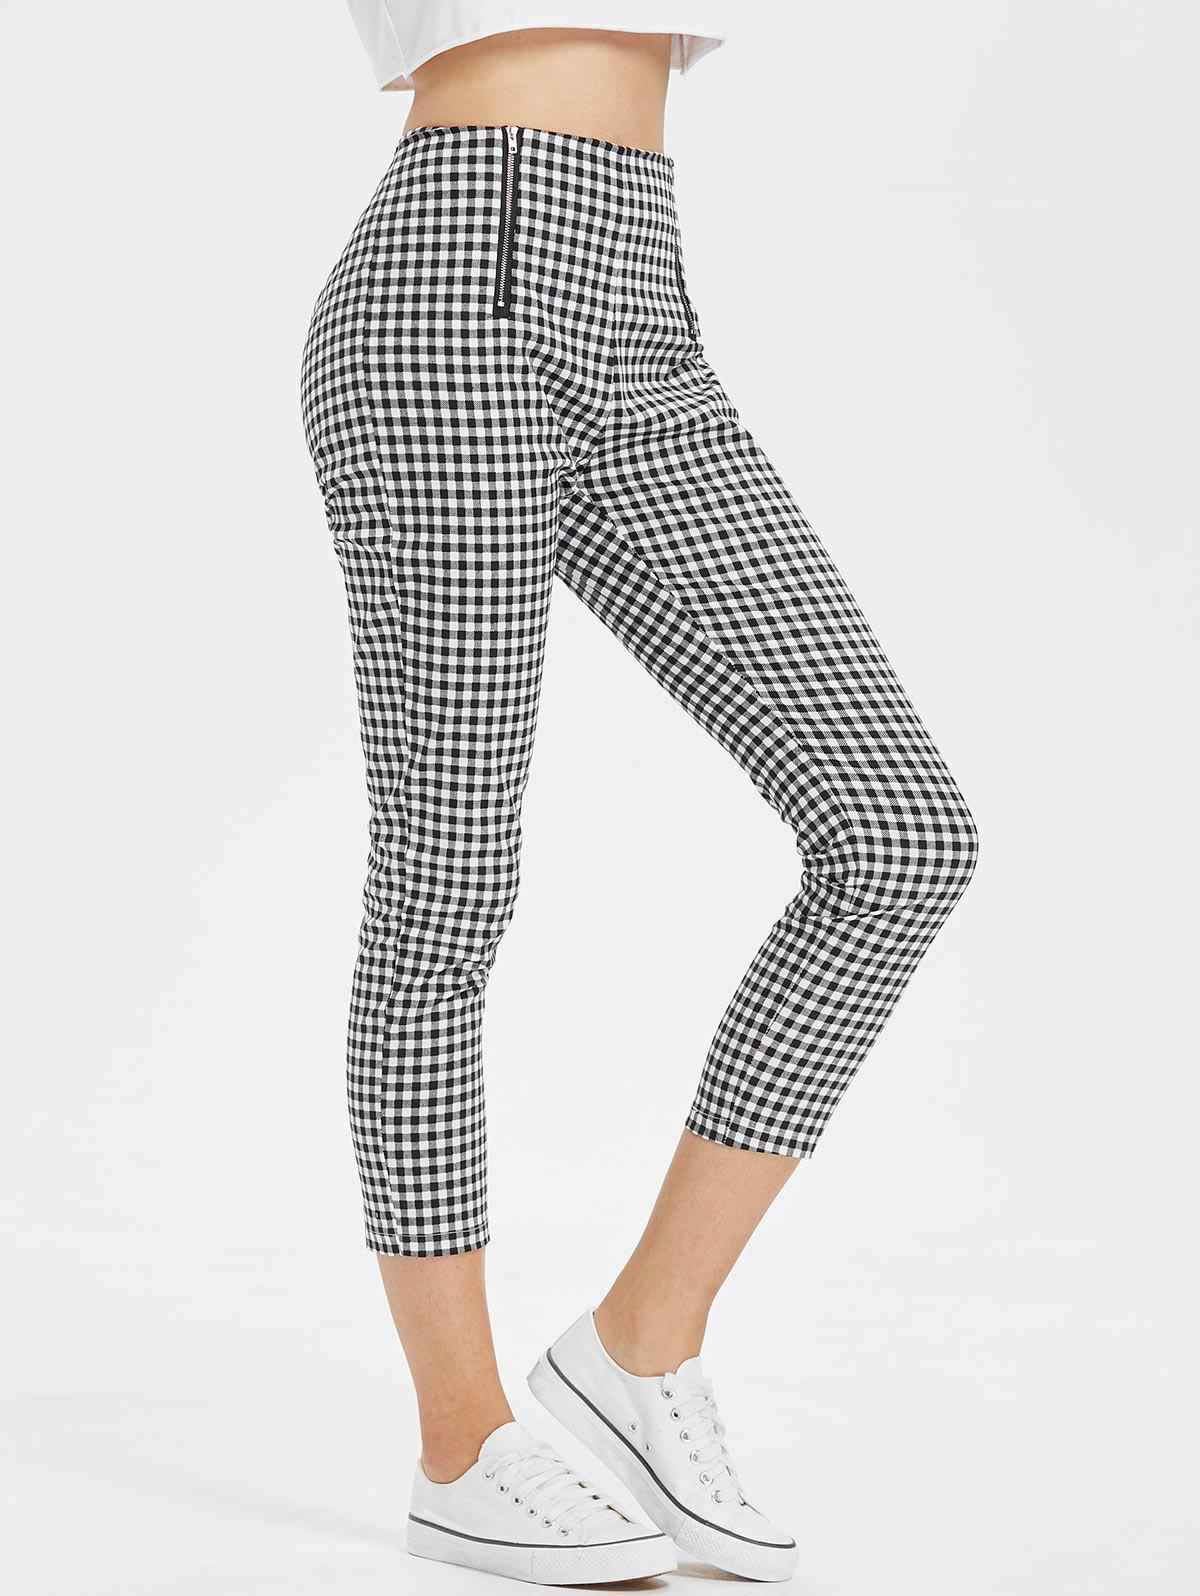 Gingham High Waisted Slacks Ankle Pants